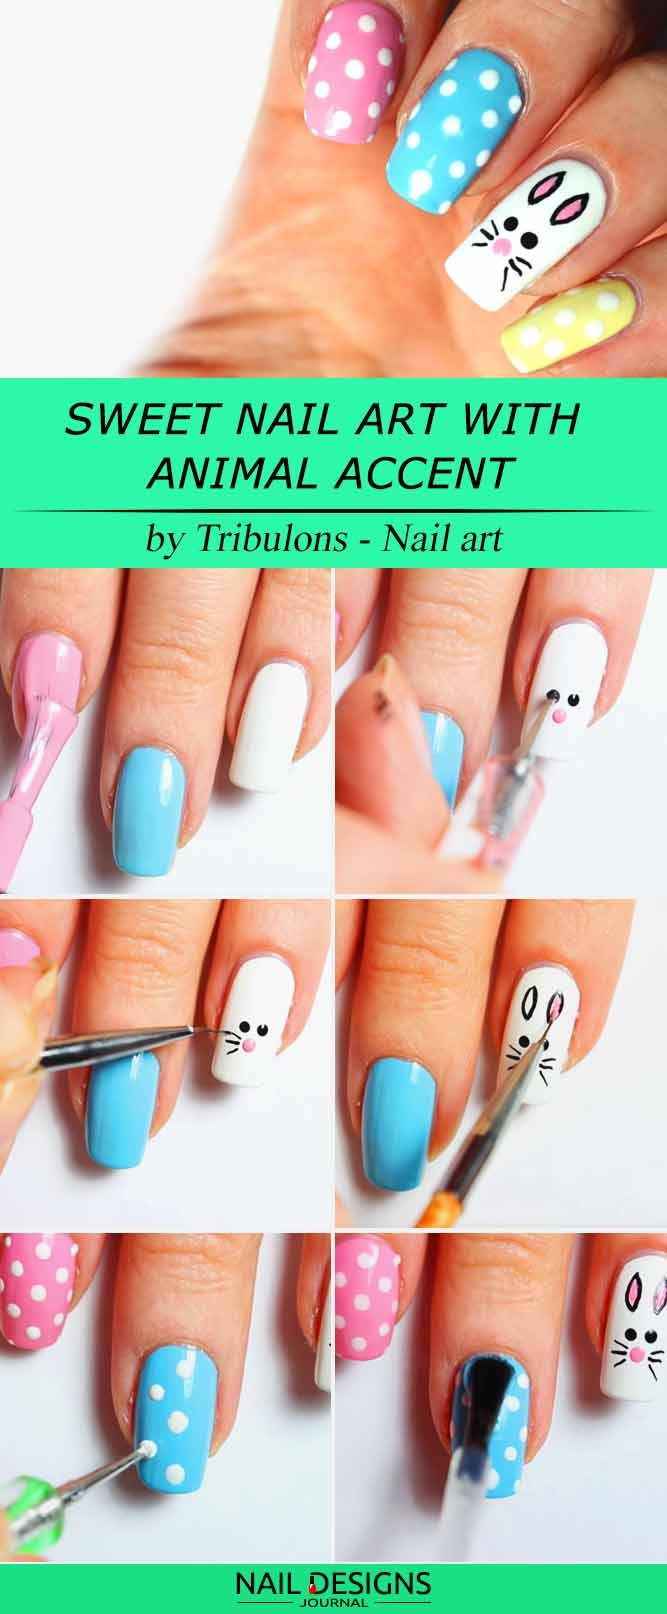 Sweet Nail Art With Animal Accent